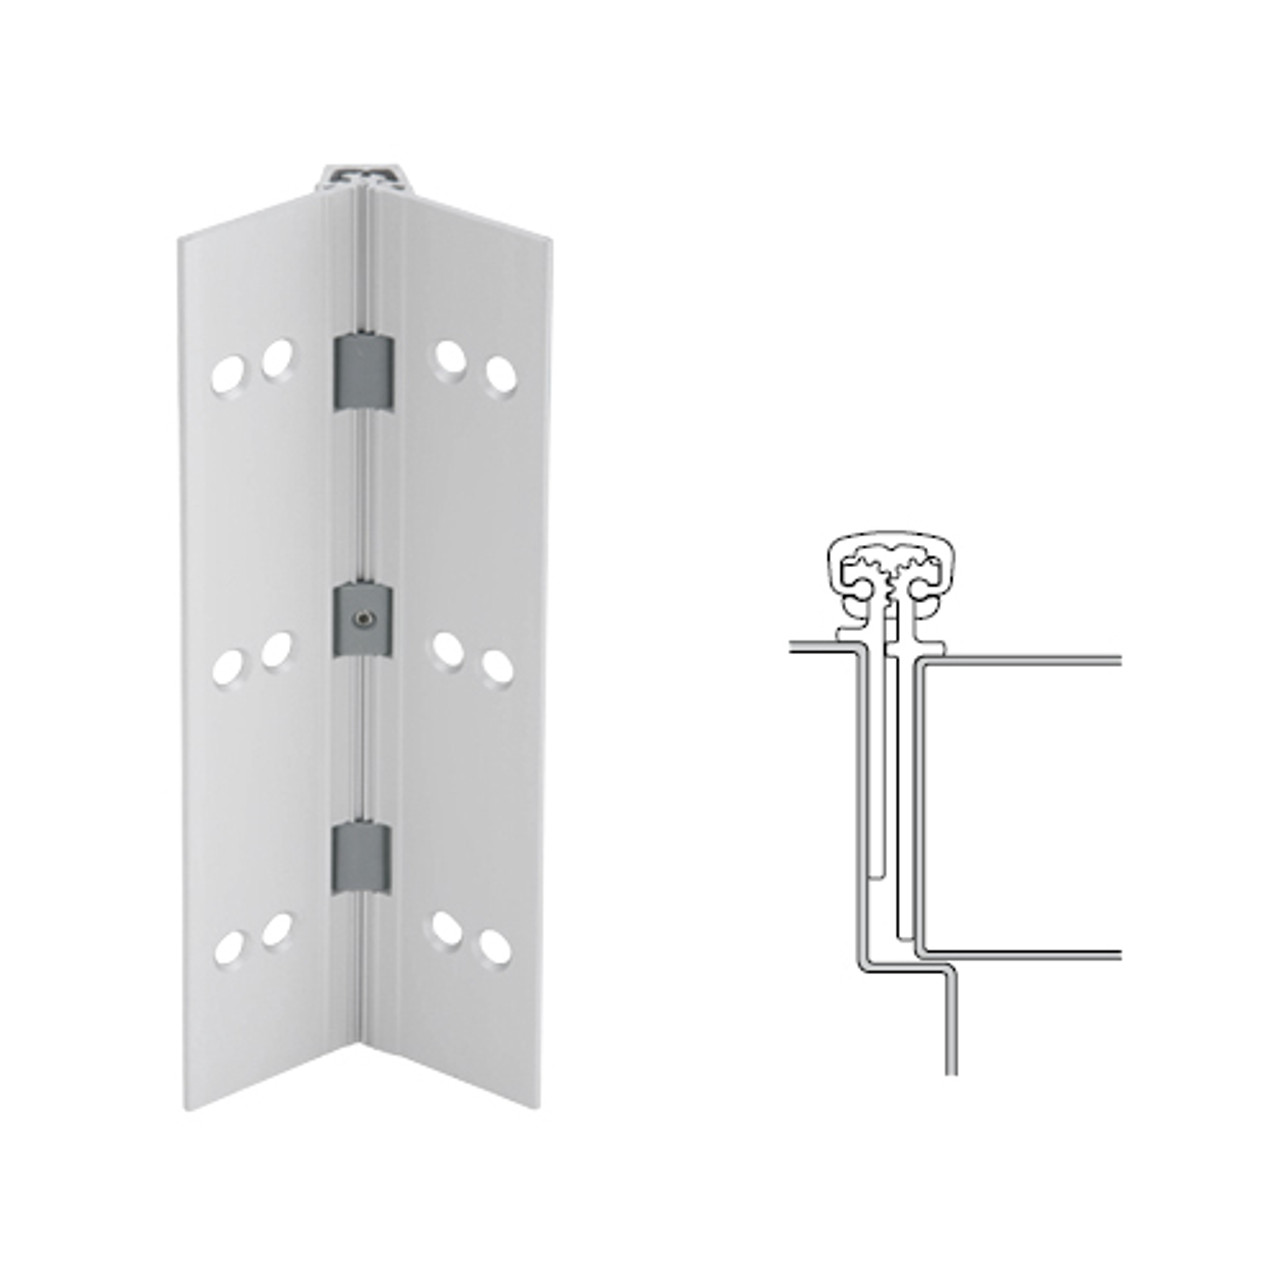 026XY-US28-95-TF IVES Full Mortise Continuous Geared Hinges with Thread Forming Screws in Satin Aluminum